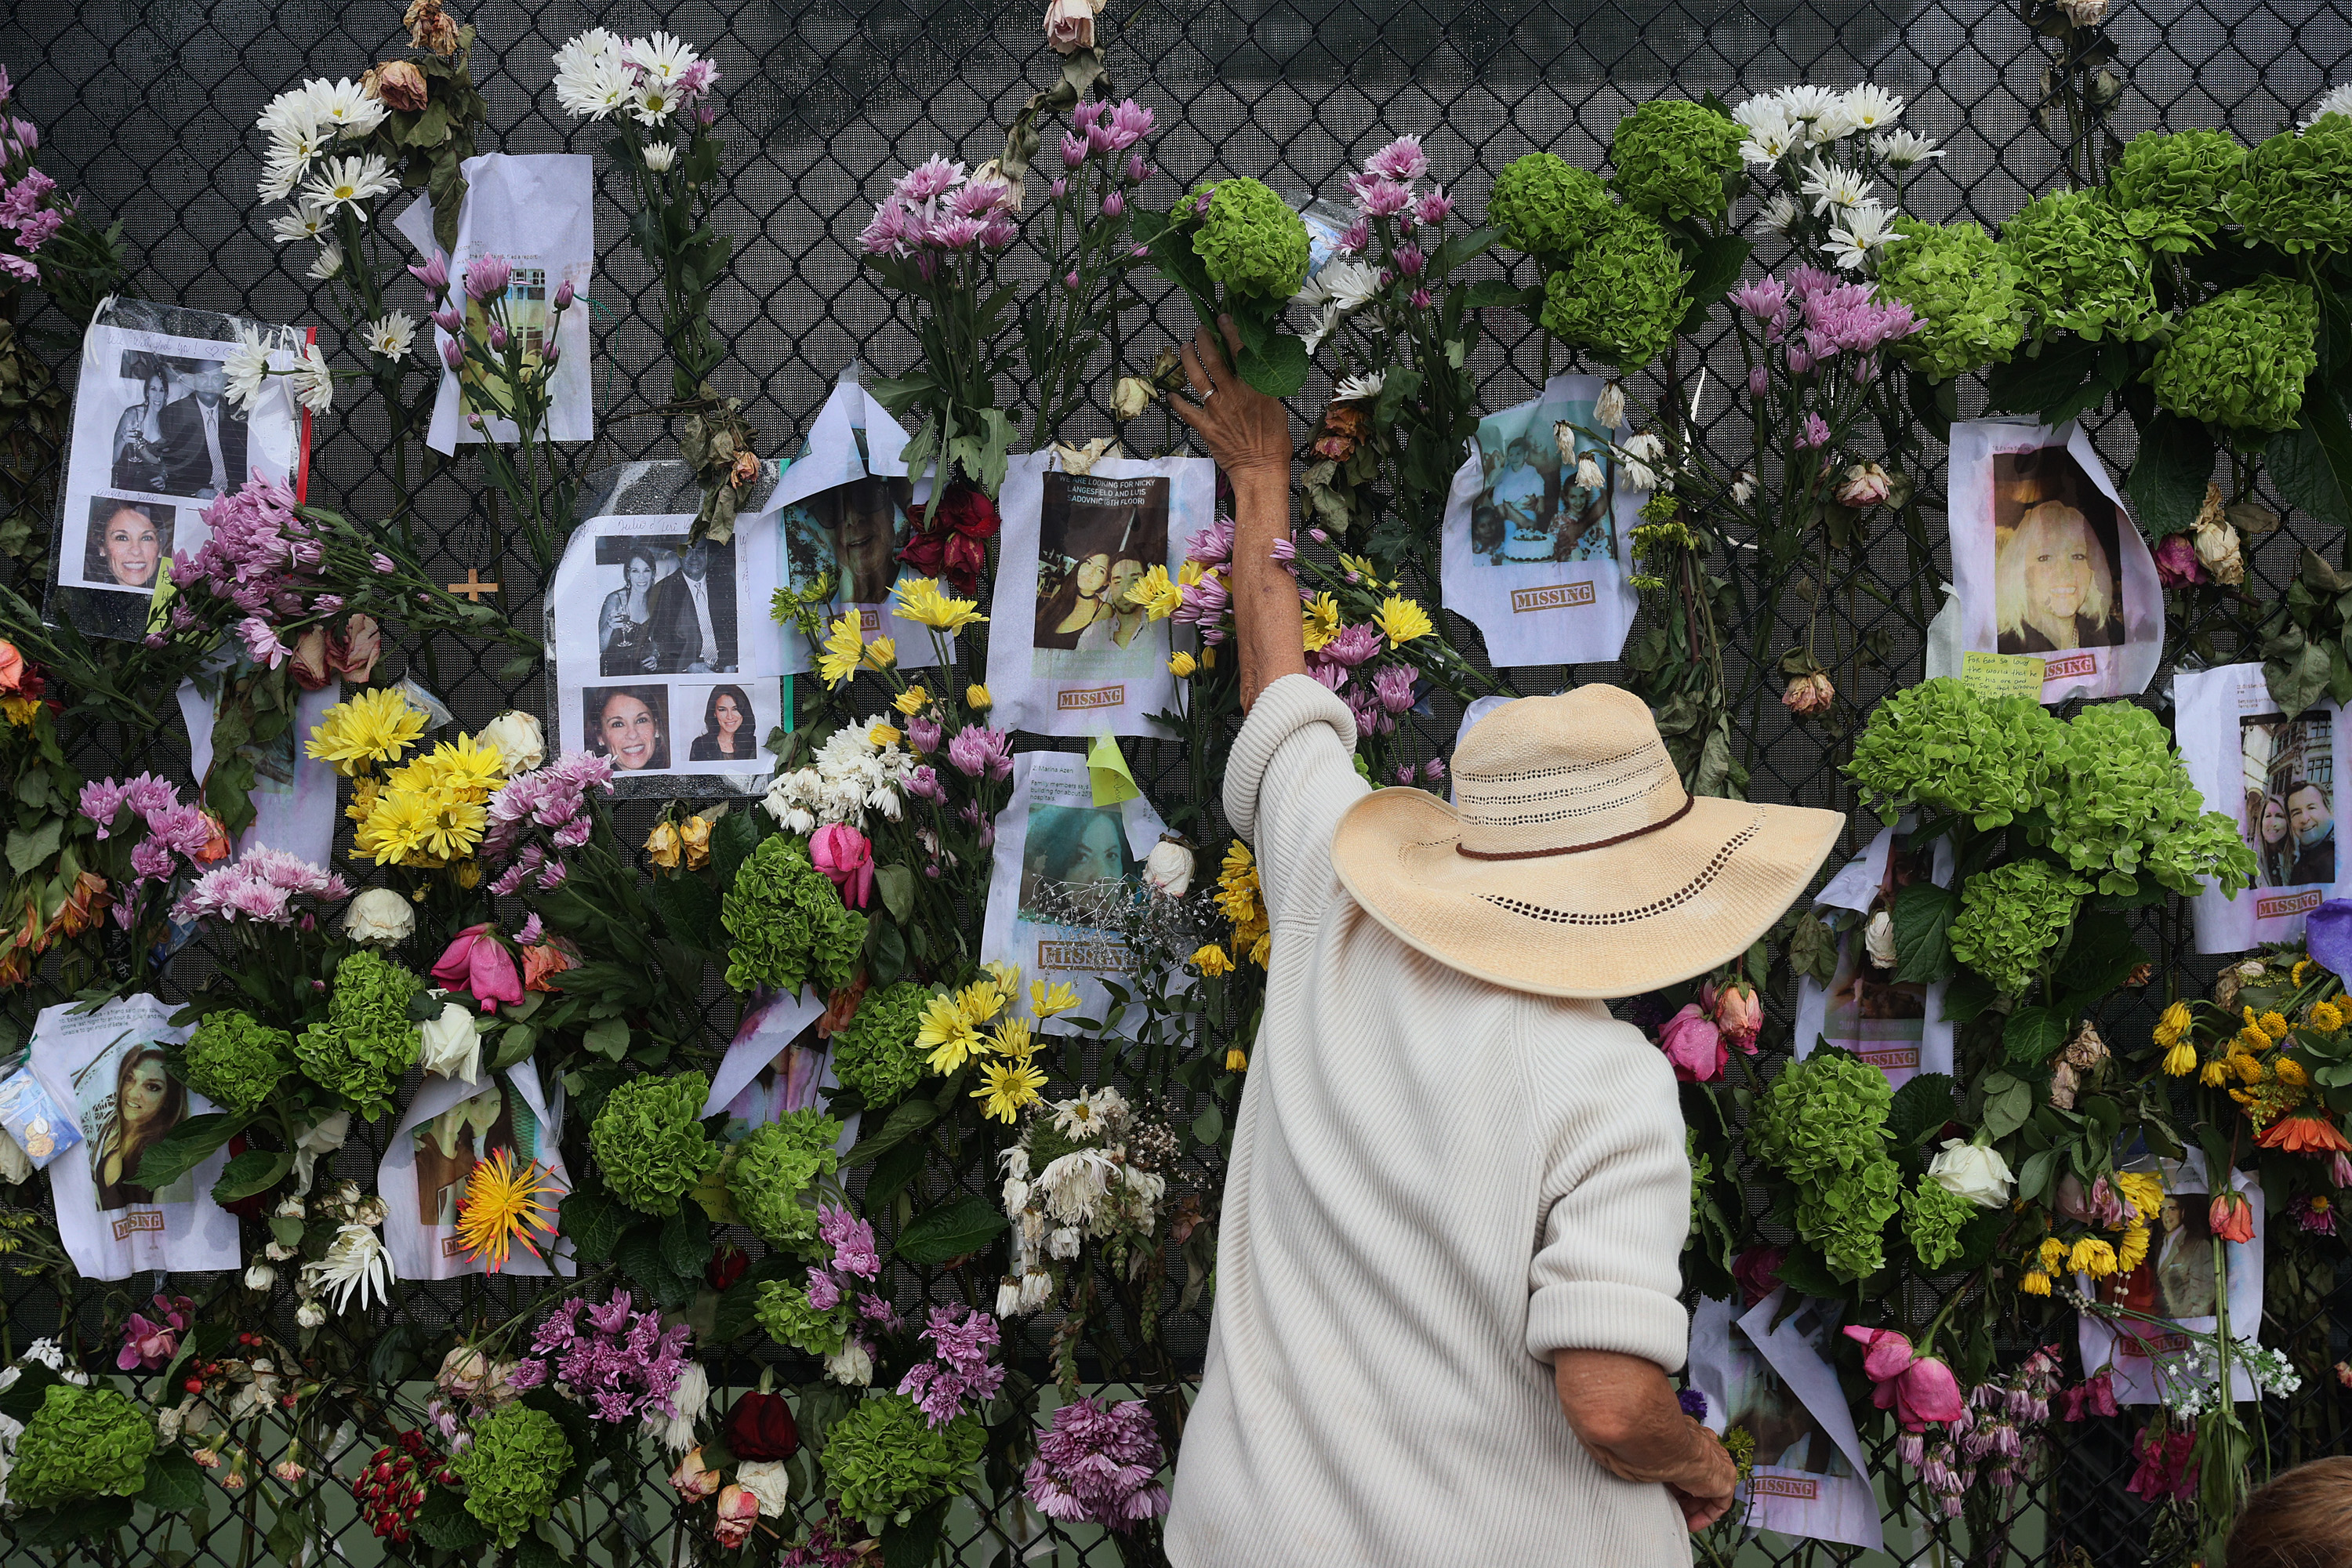 A person adds flowers to a memorial that has pictures of some of the missing from the partially collapsed 12-story Champlain Towers South condo building on June 28, in Surfside, Florida.